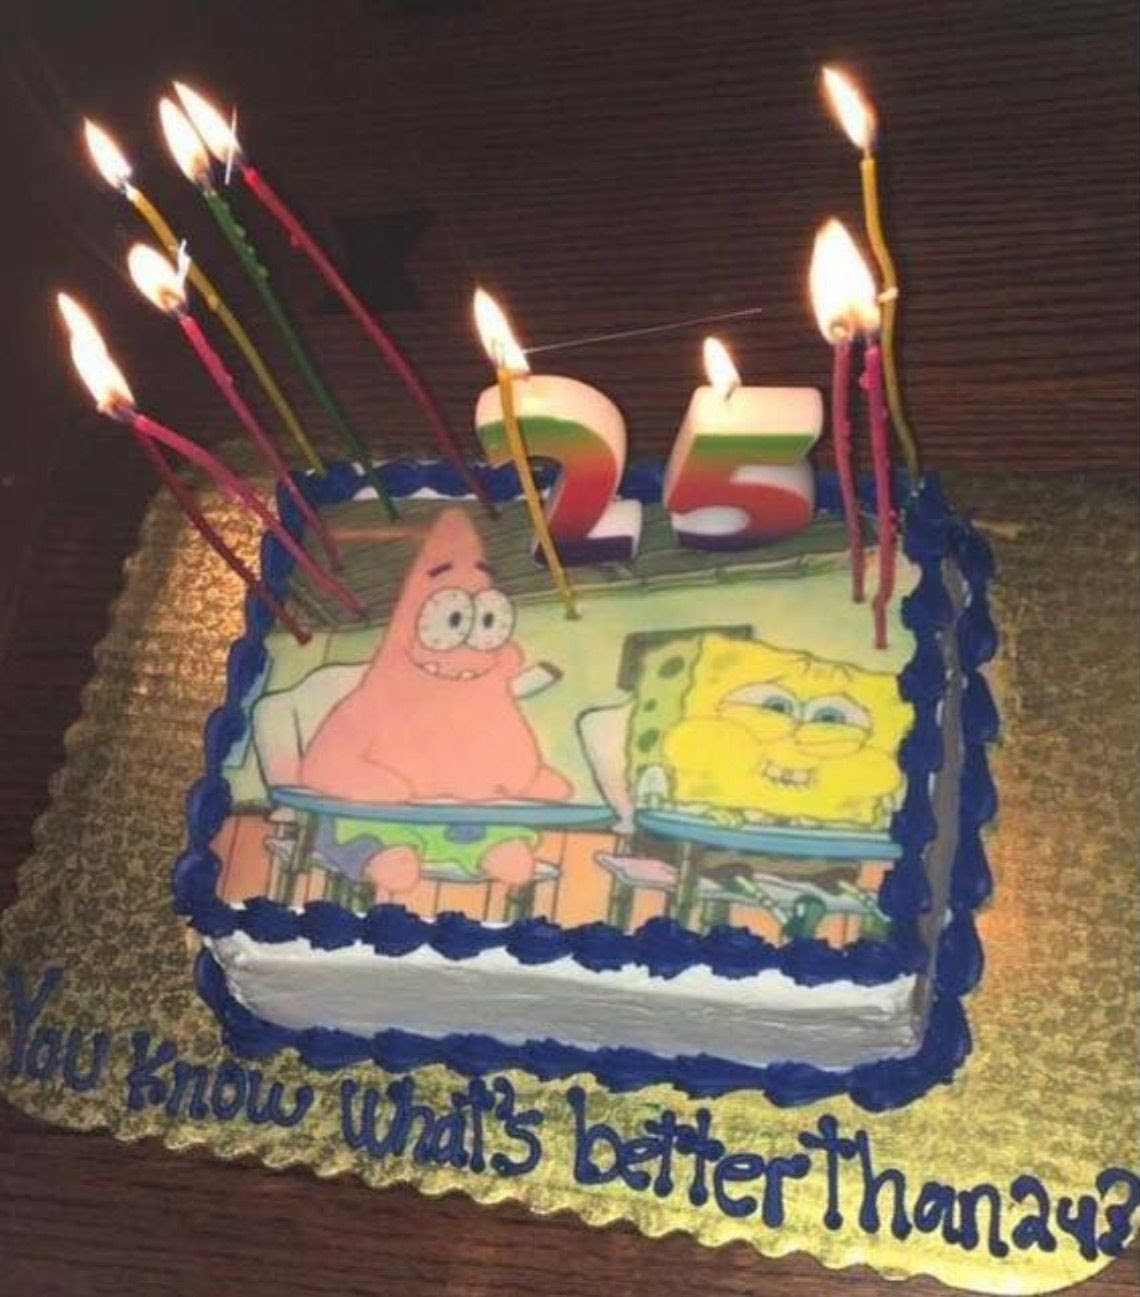 Funny Birthday Cakes For Adults 25th Birthday Cake Spongebob Themed